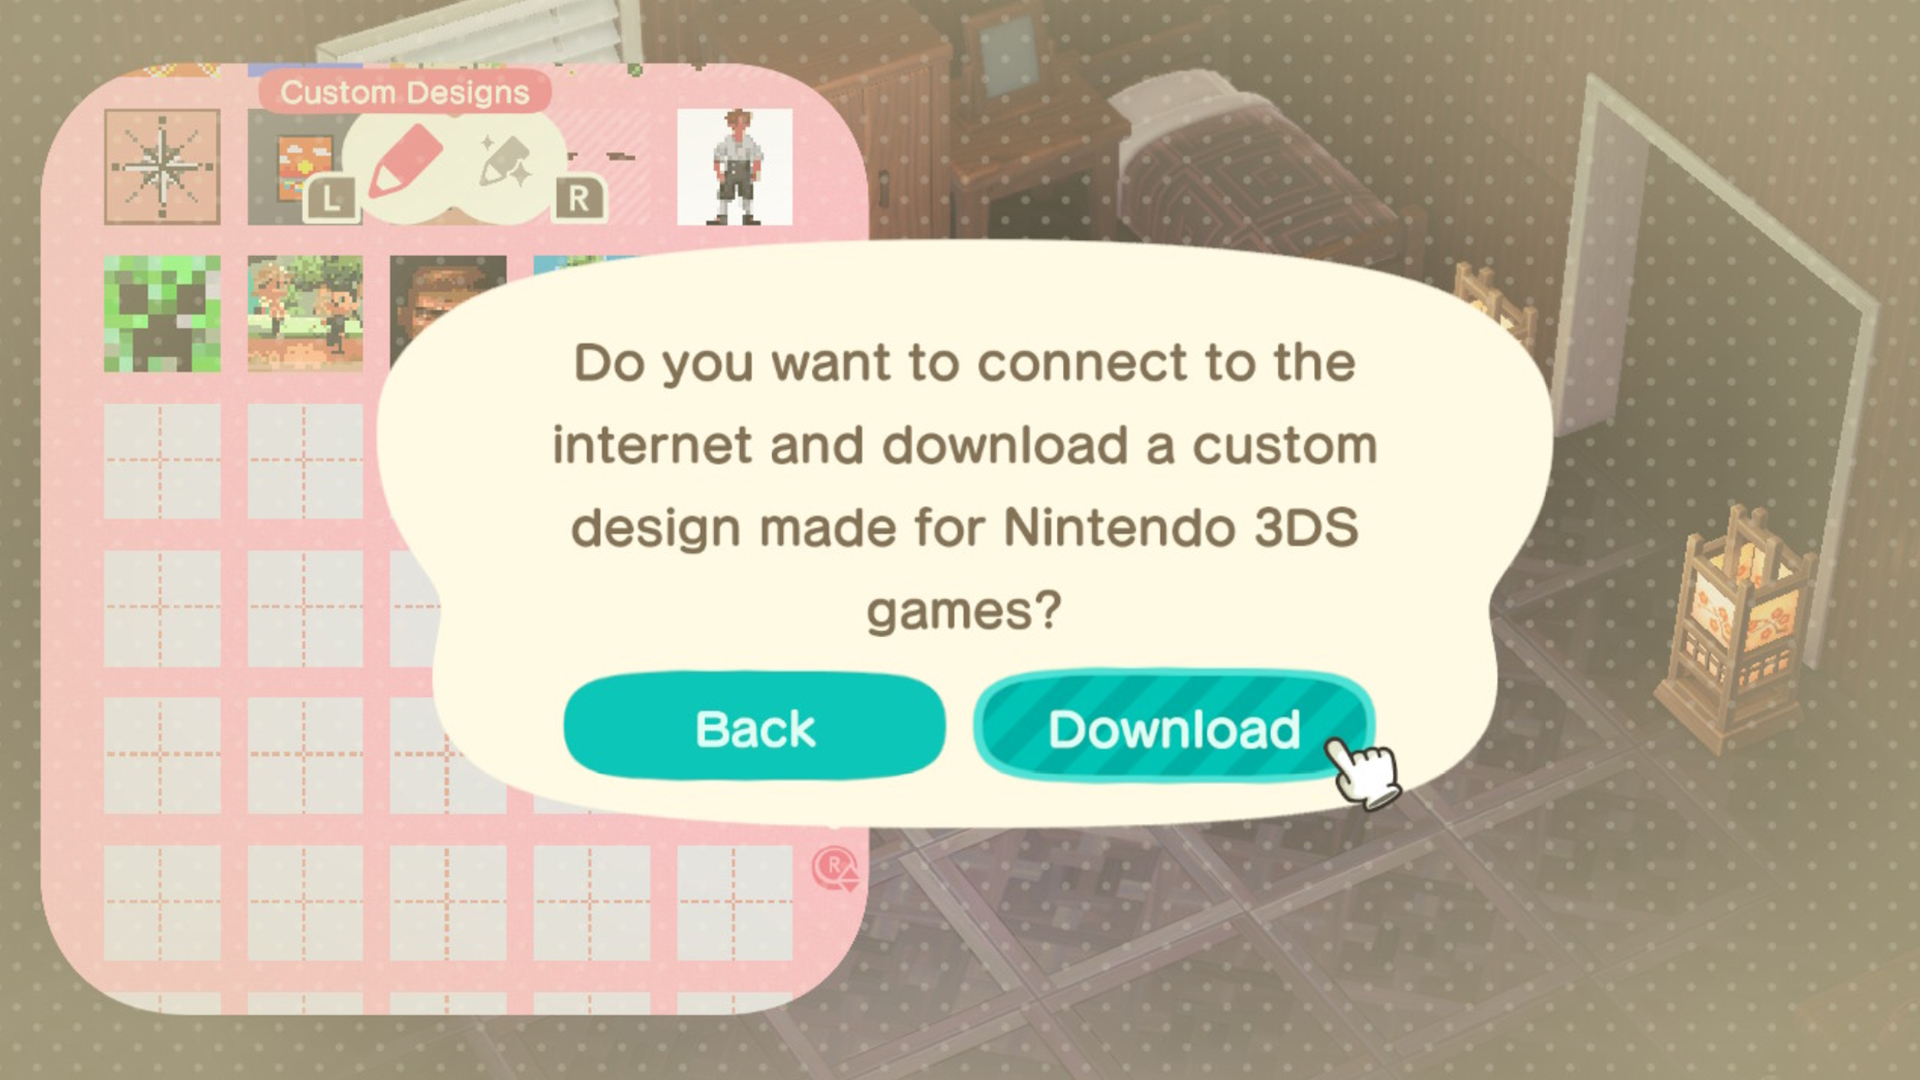 Www Pro Design Com animal crossing: new horizons — how to scan qr codes and